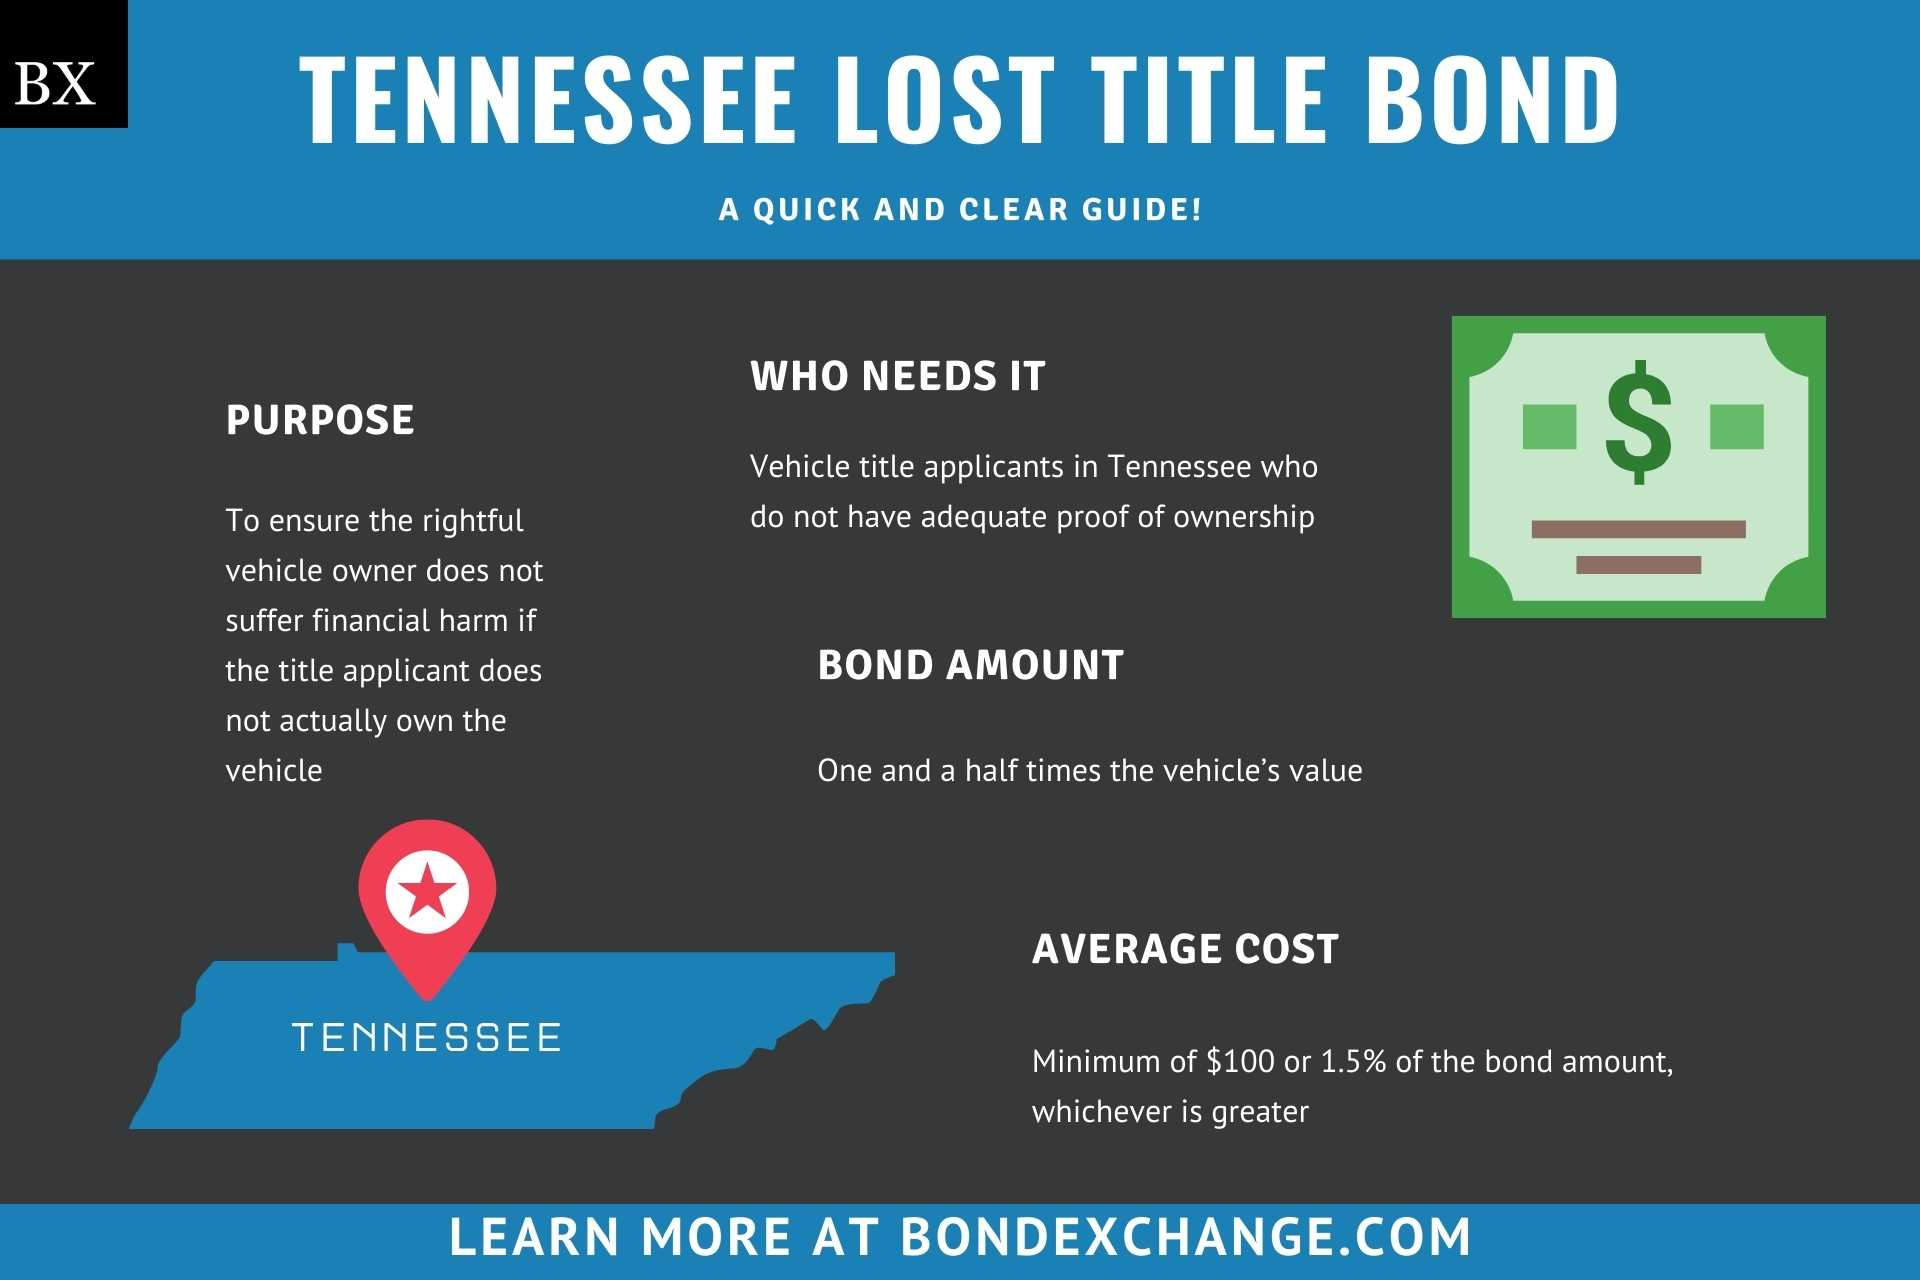 Tennessee Lost Title Bond